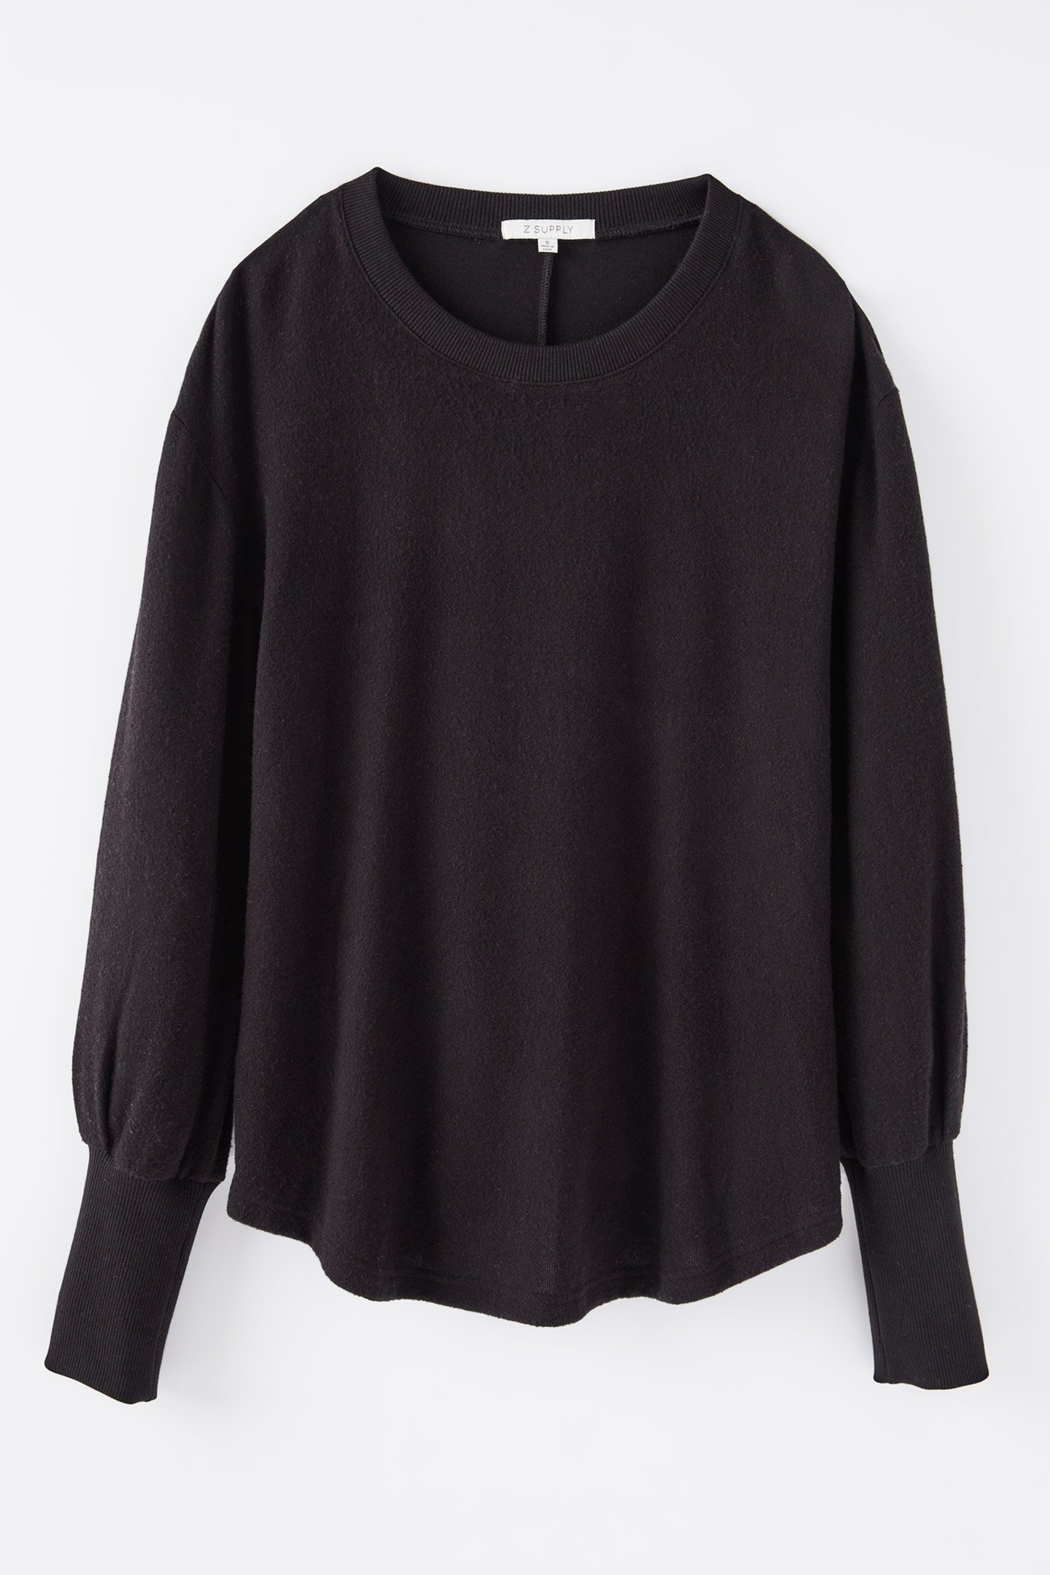 z supply Vada Marled Long Sleeve Top - Side Cropped Image